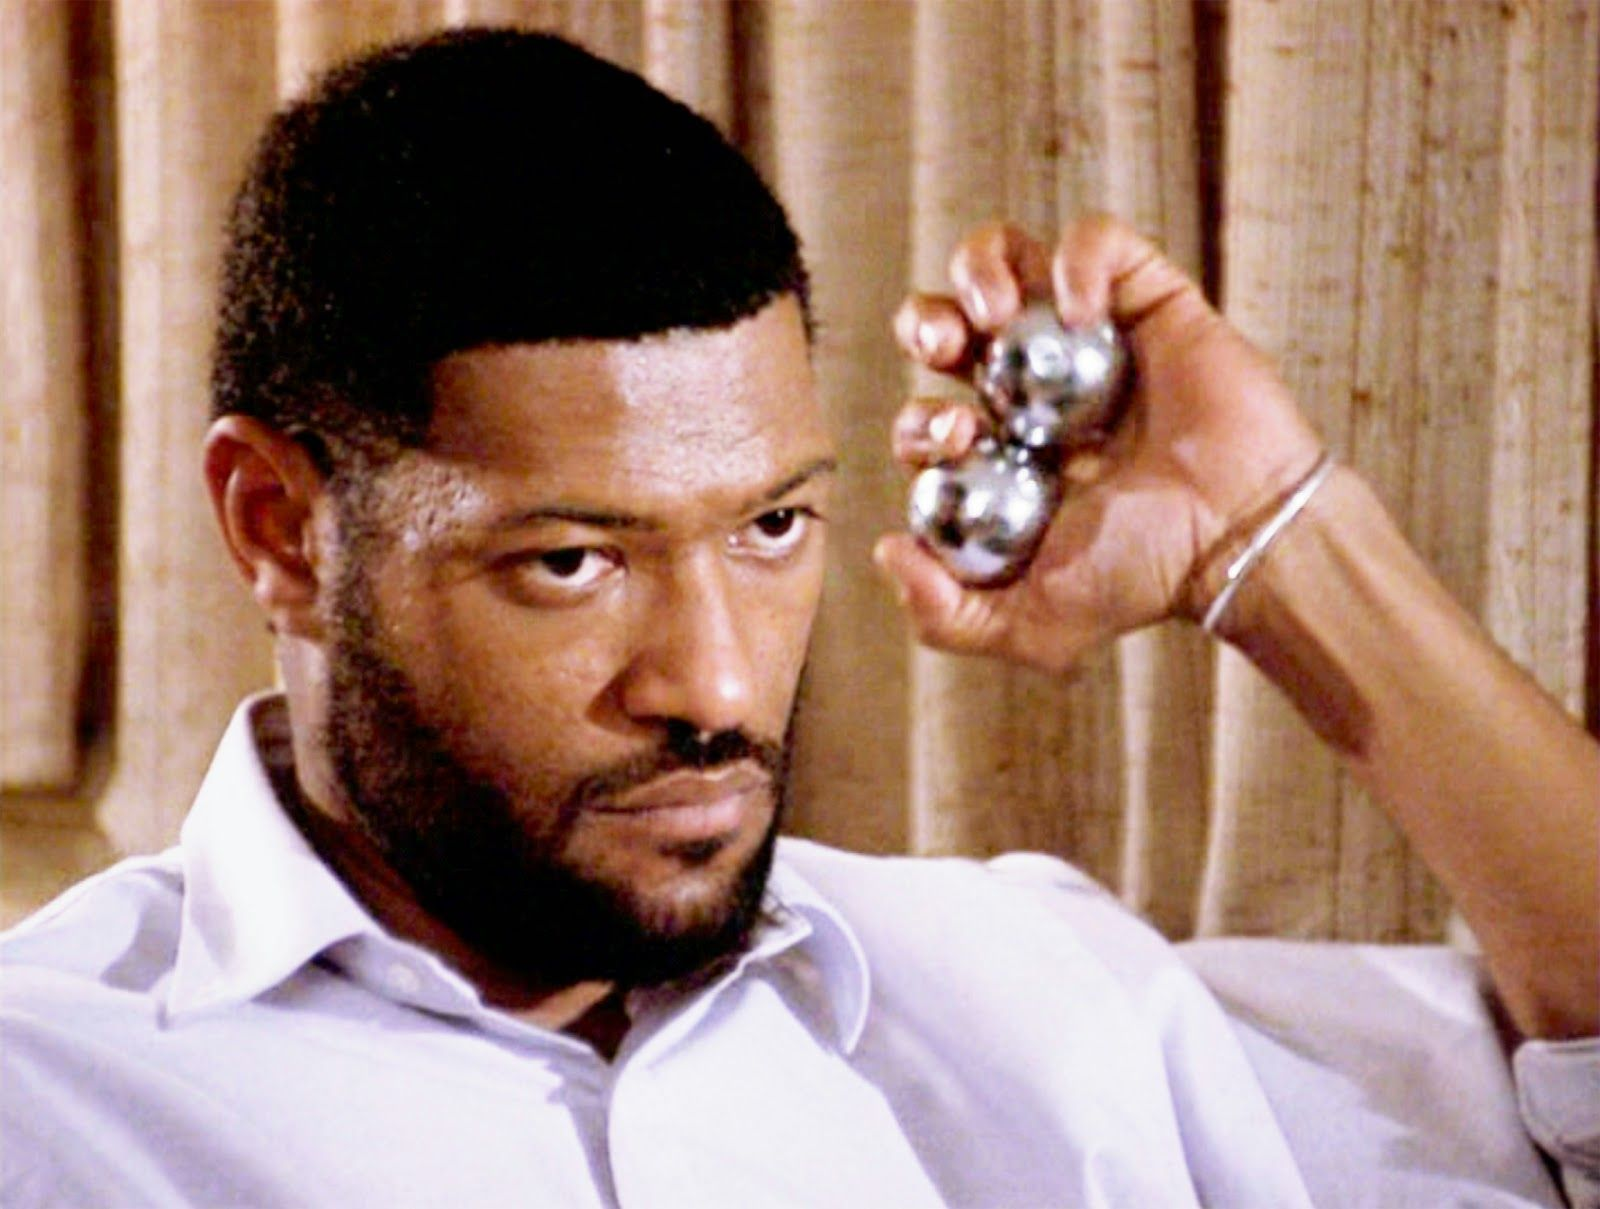 laurence fishburne as quotfurious stylesquot in john singletons